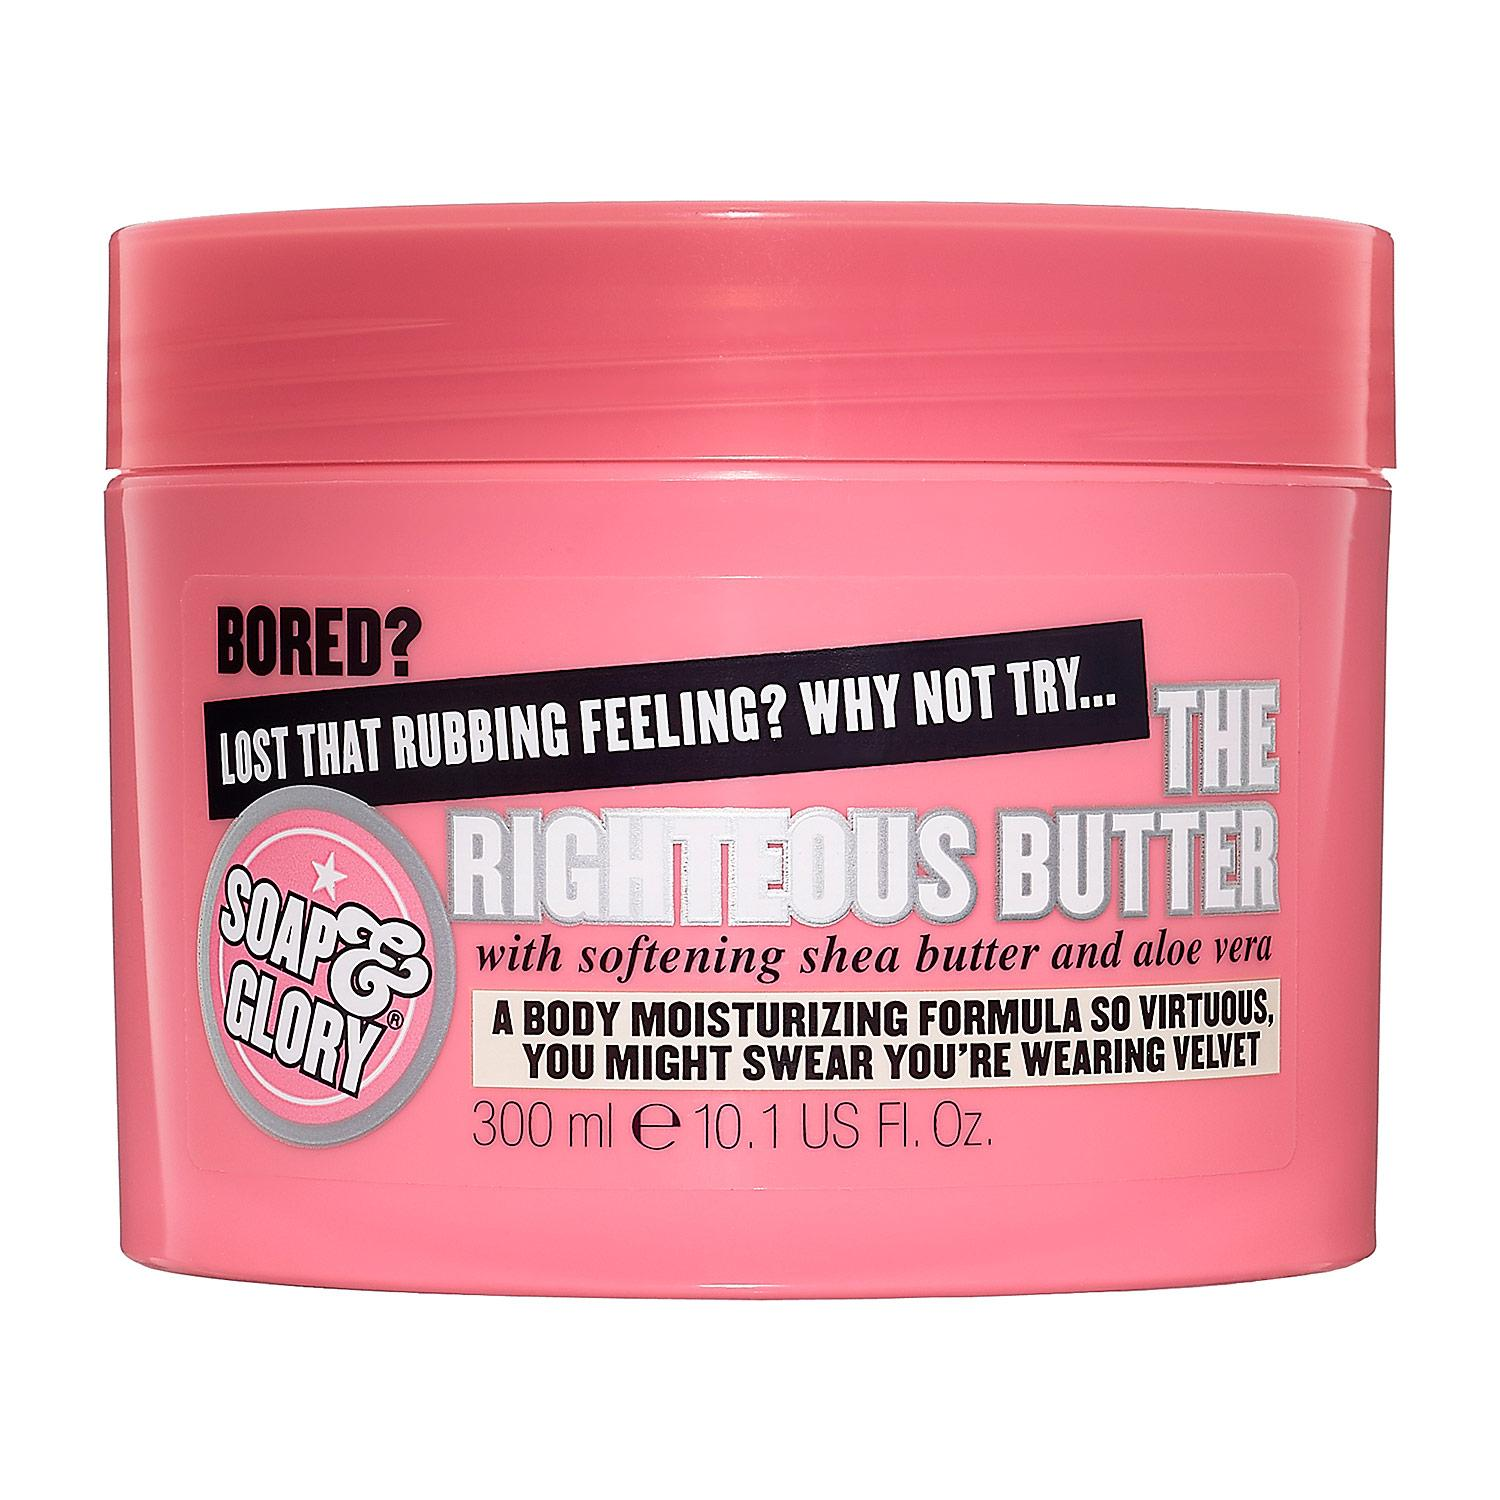 The Righteous Body Butter